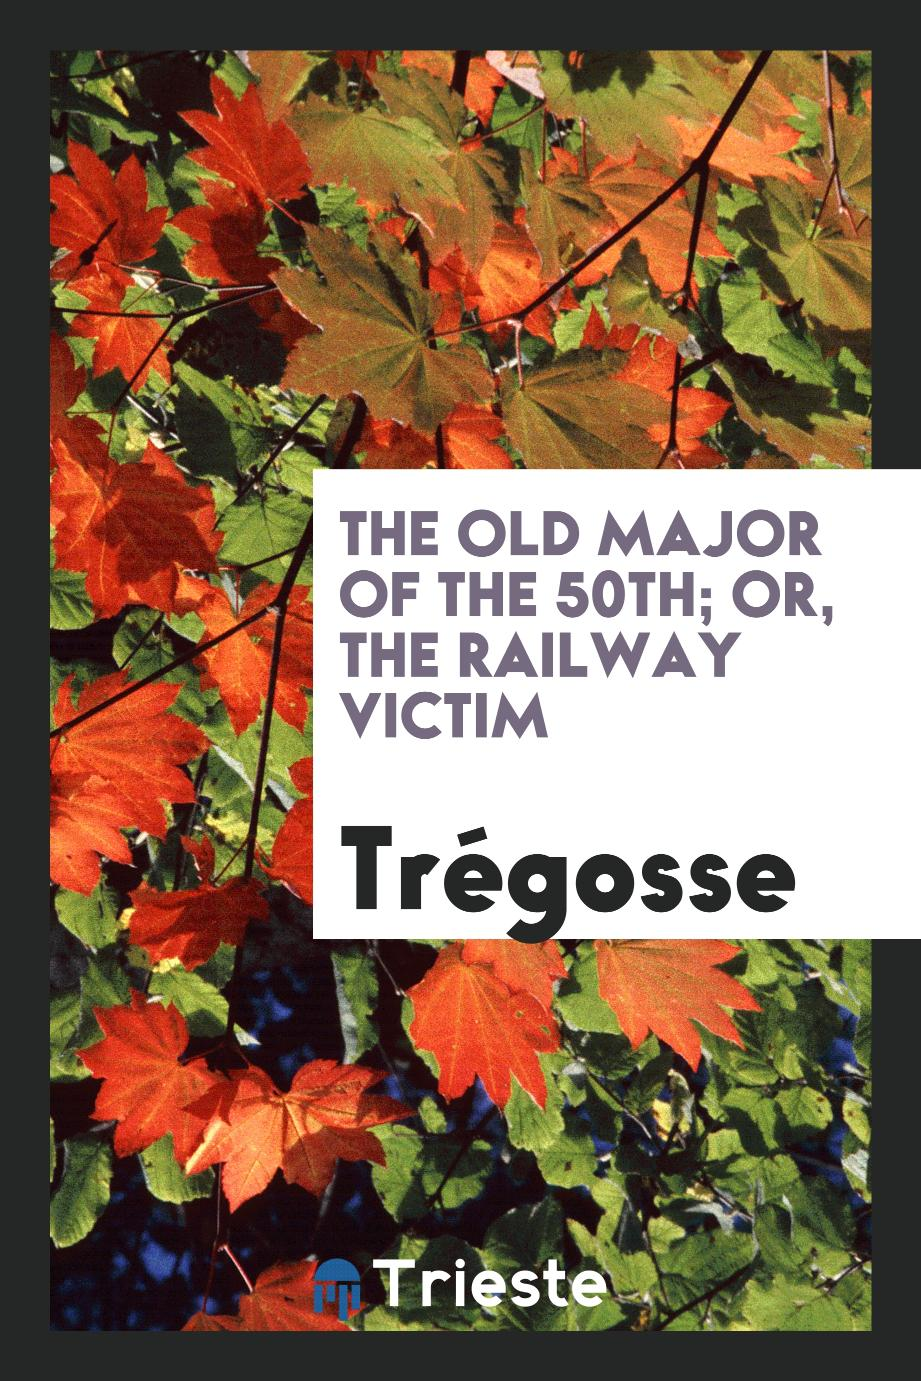 The old major of the 50th; or, The railway victim